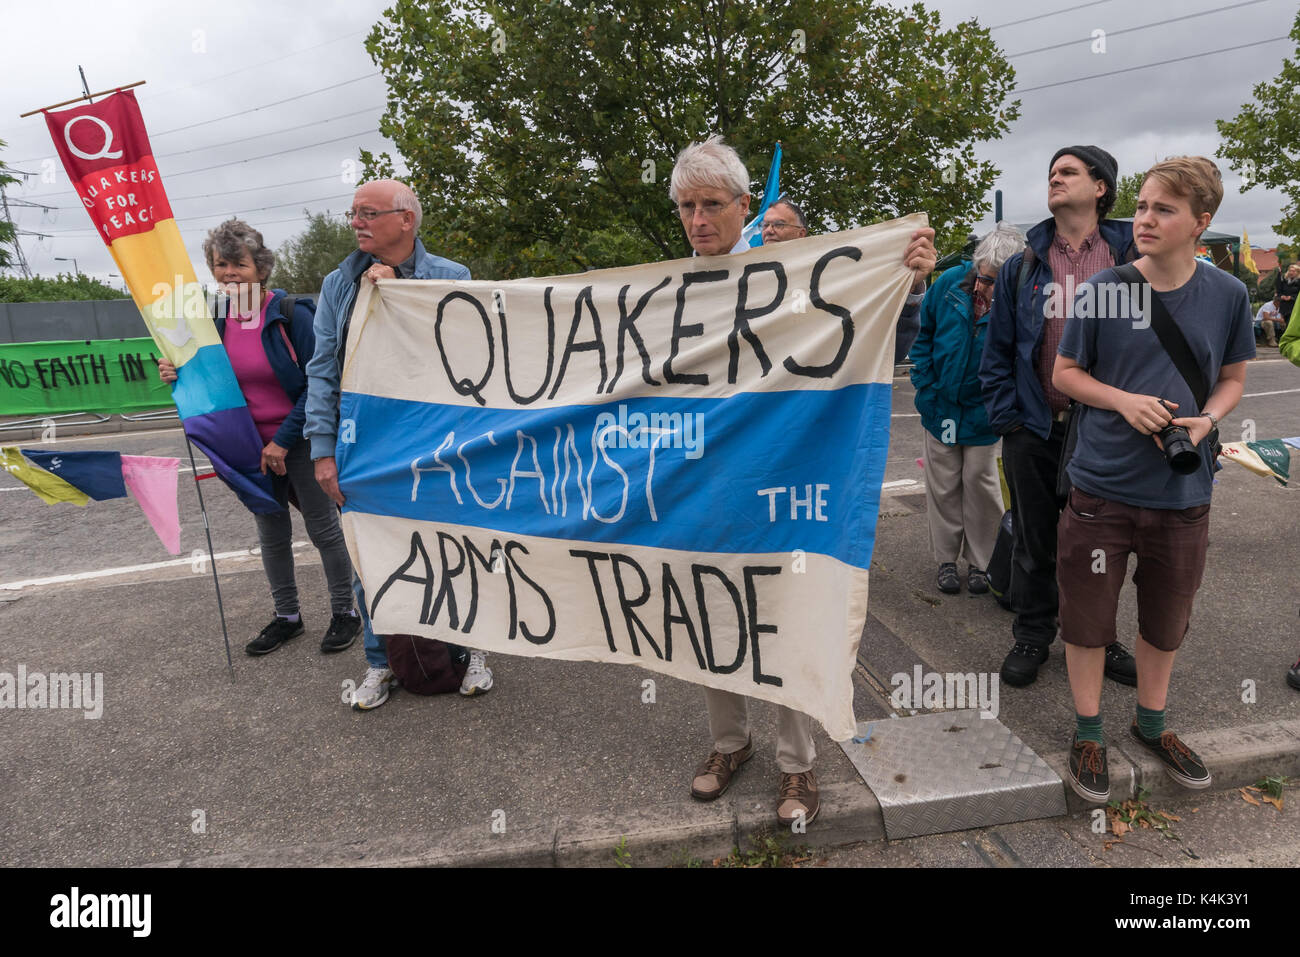 September 5, 2017 - London, UK - London, UK. 5th September 2017.  Quakers Against the Arms trade banner at the second Stock Photo